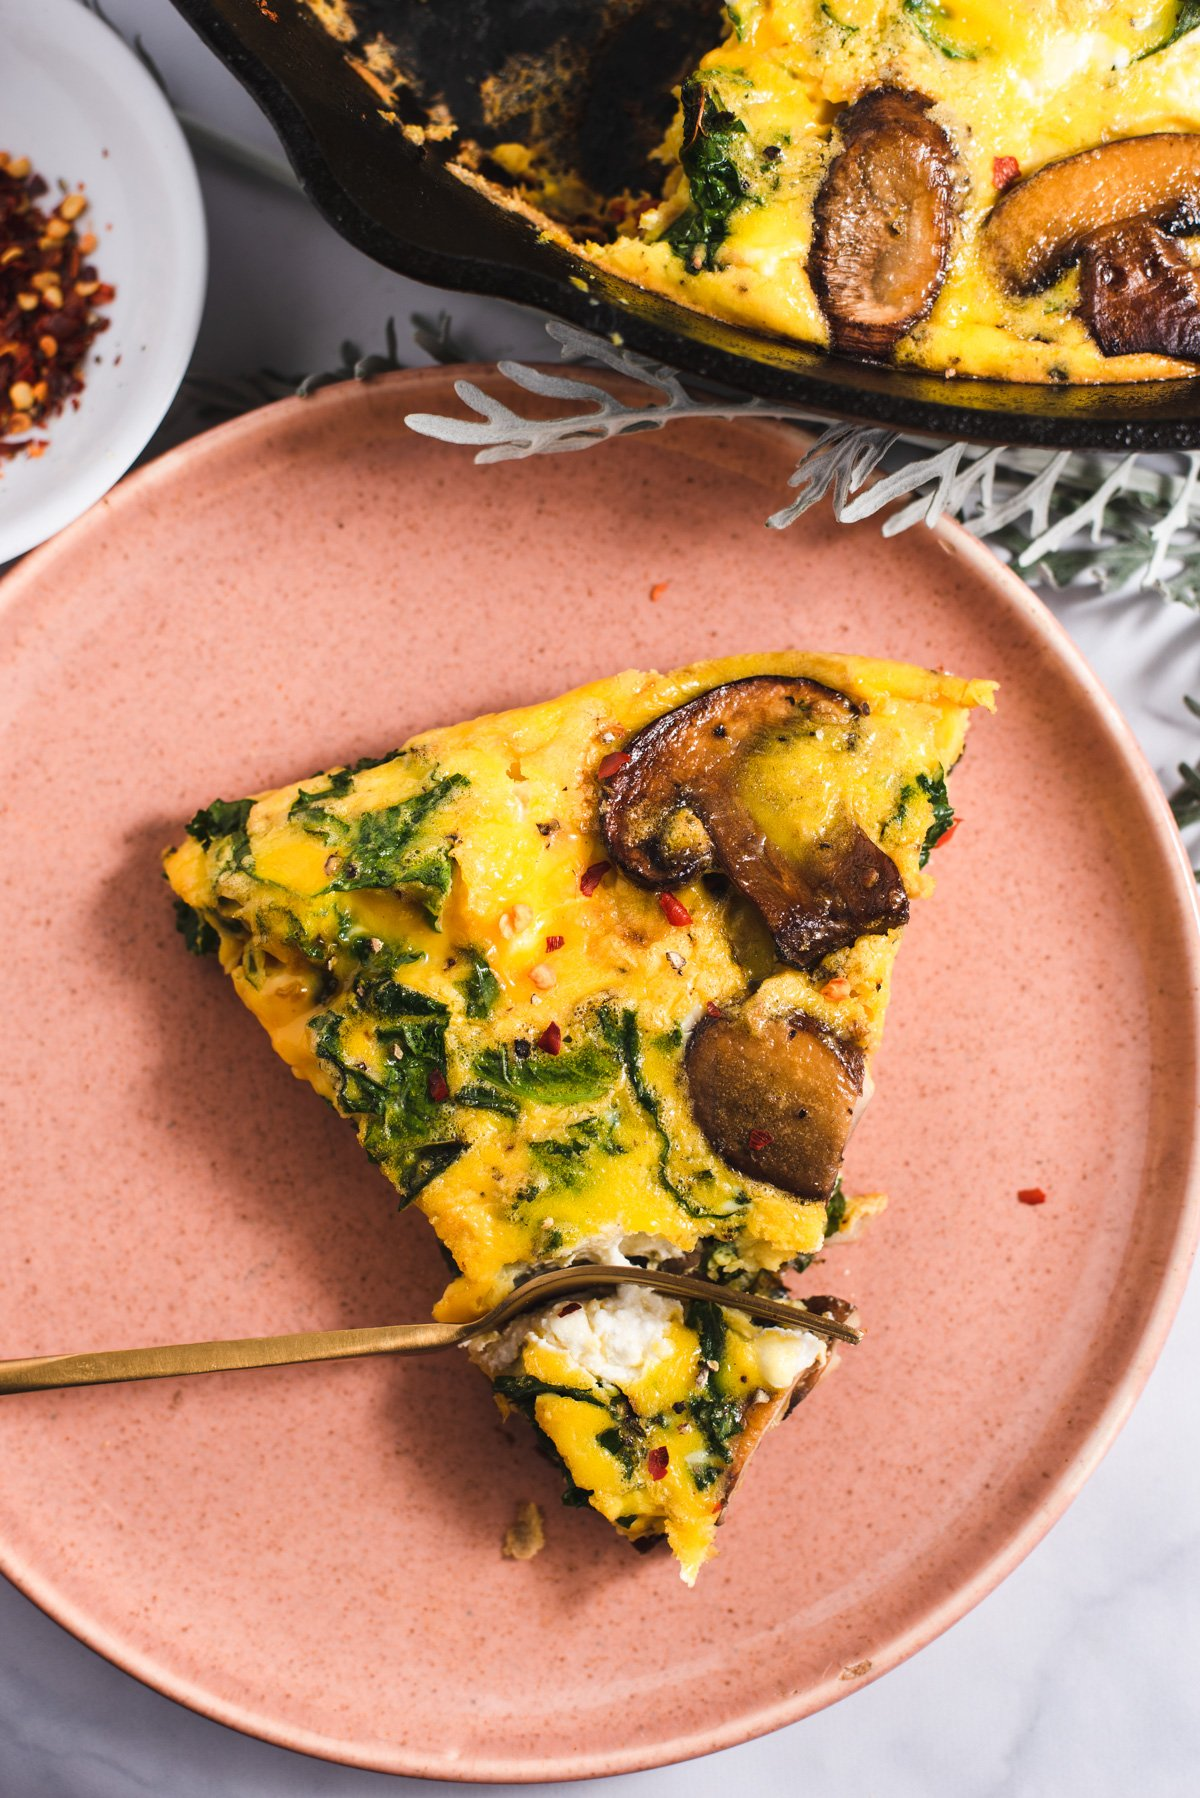 Slice of frittata on a pink plate with a gold fork